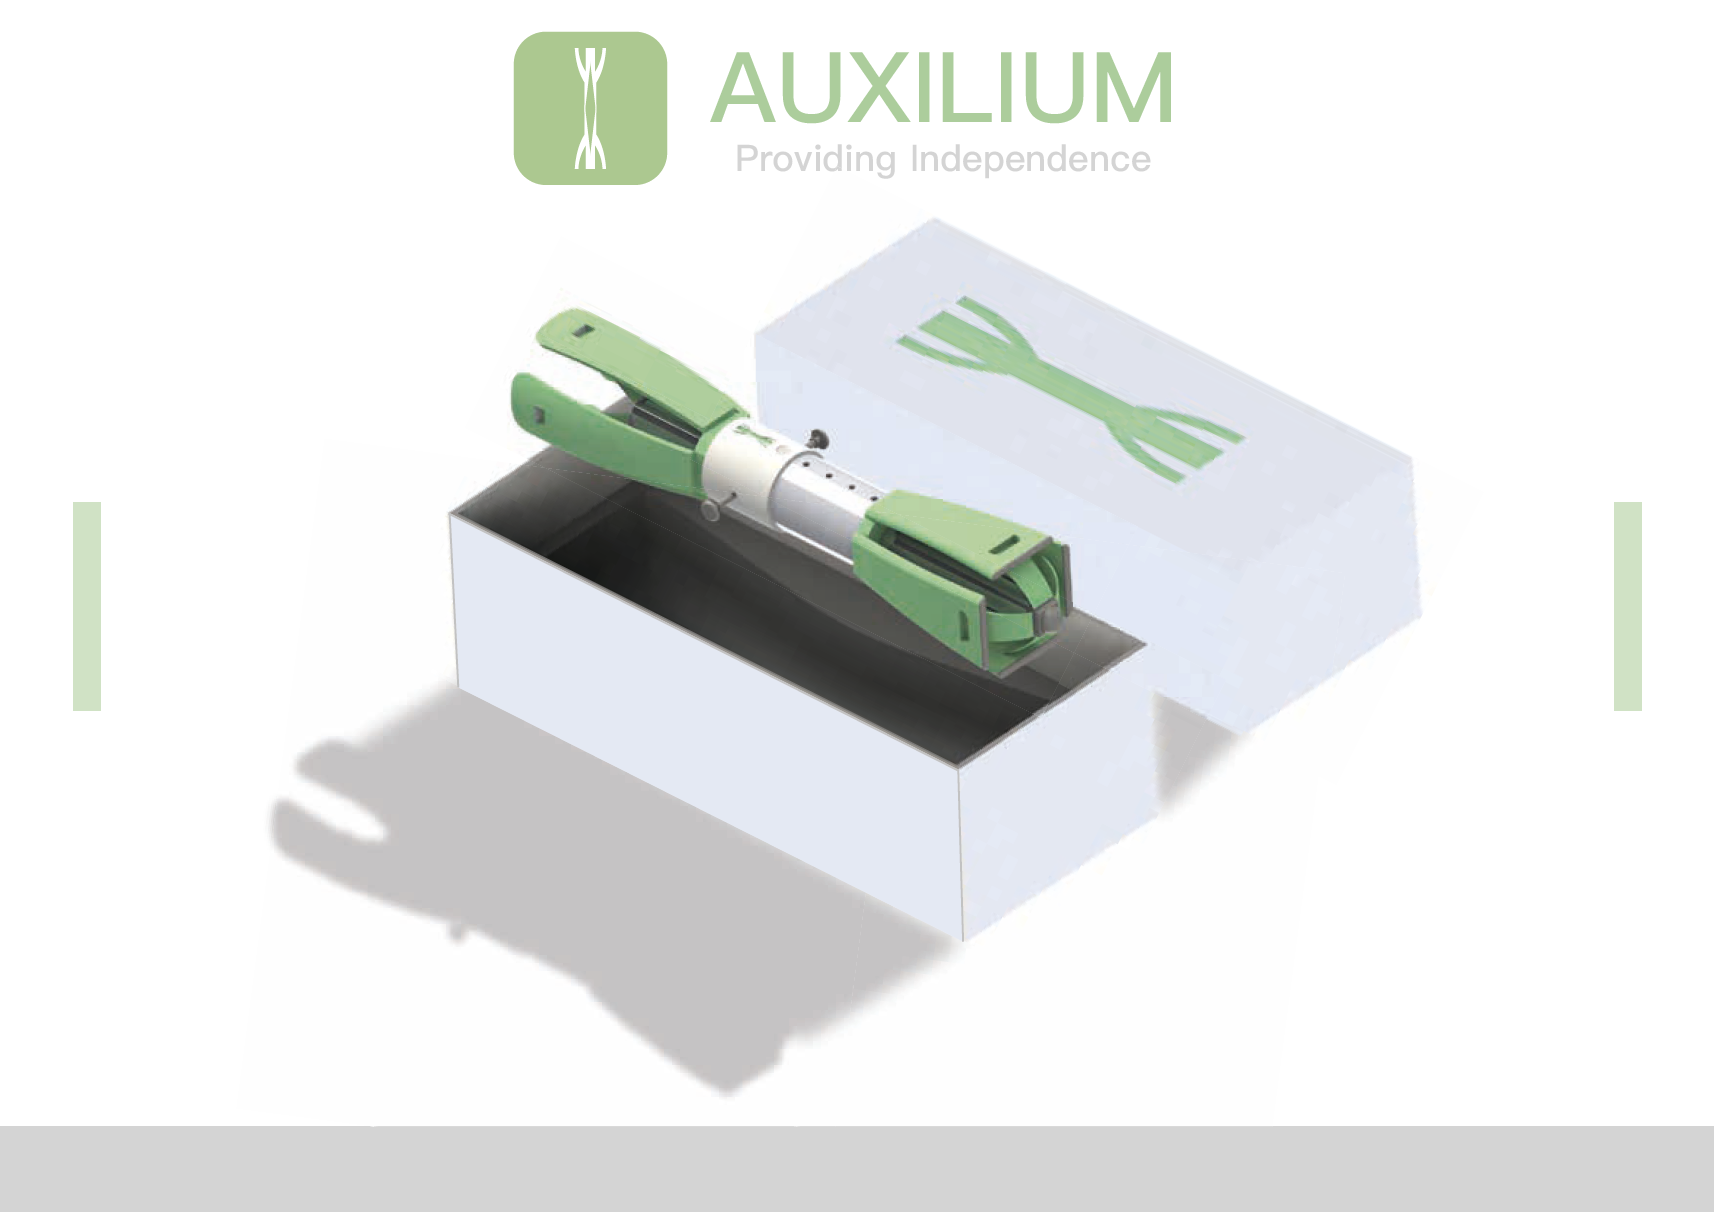 Picture of Lewis' Auxilium design showing prosthetic in packaging